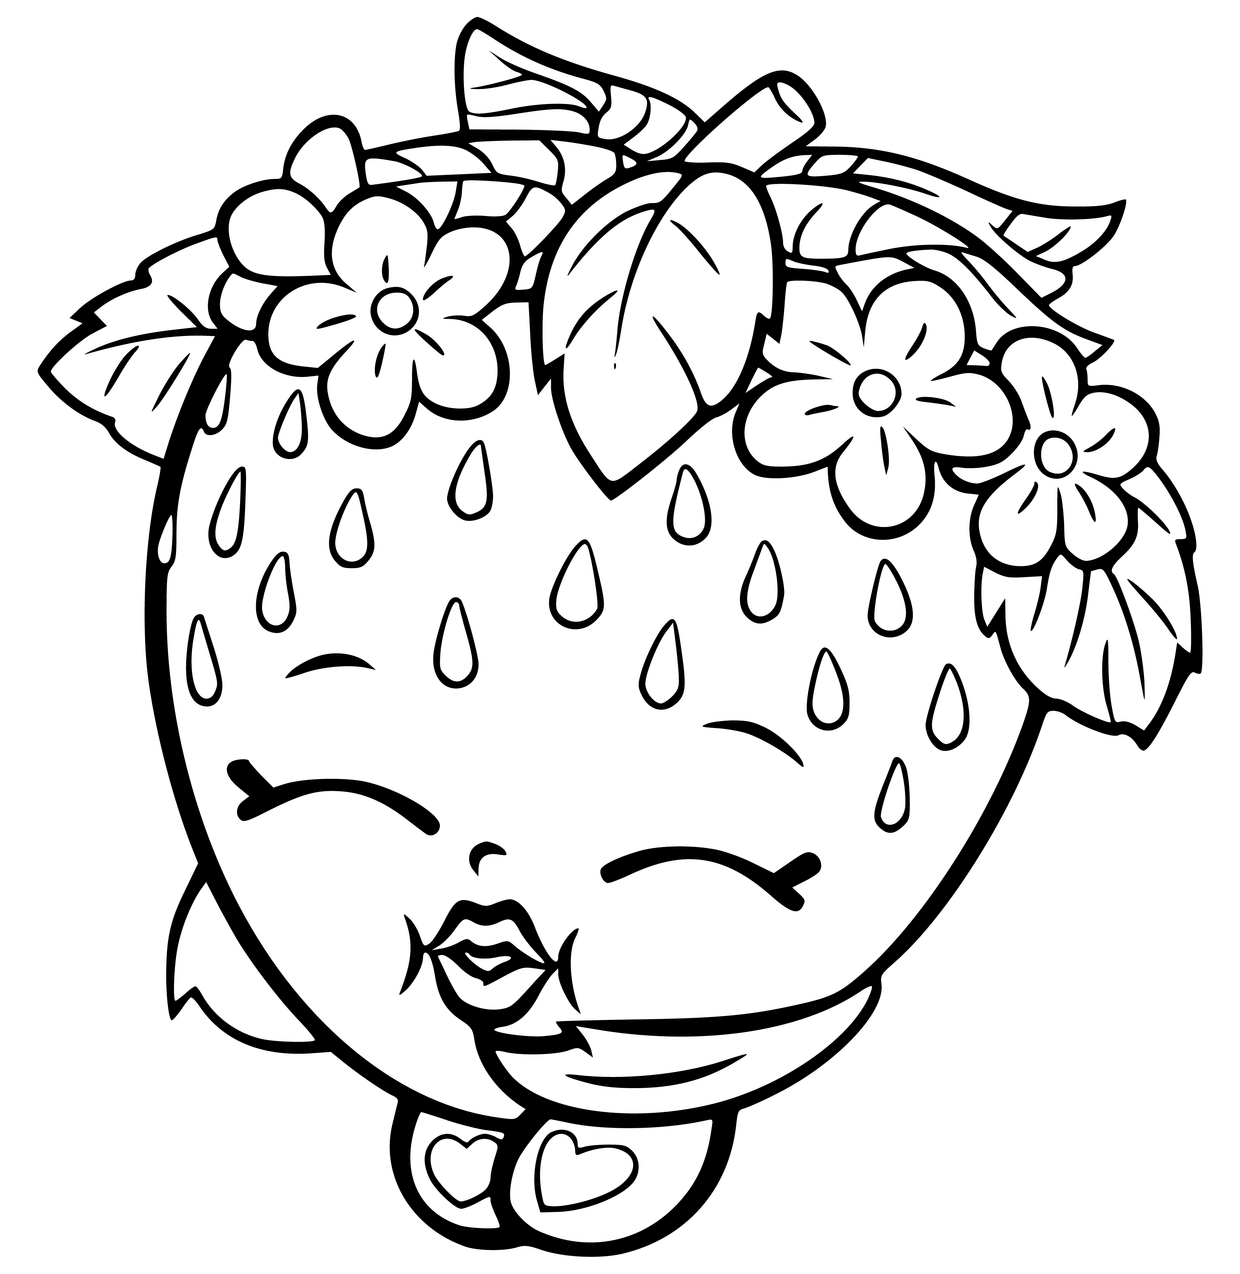 1240x1274 Shopkins Lipstick Coloring Pages Collections